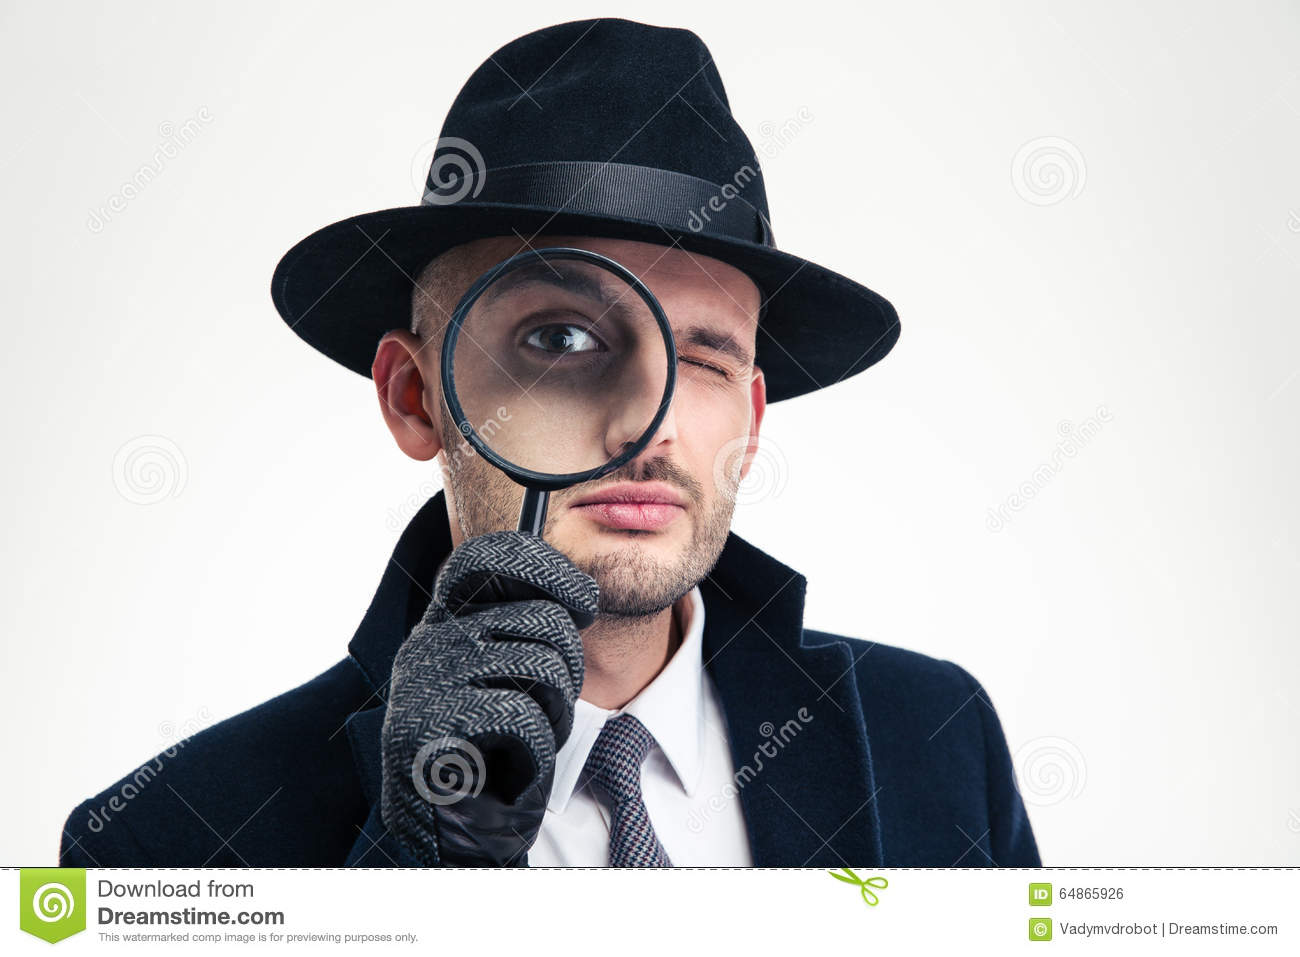 Funny concentrated inspector in black hat looking through the magnifier